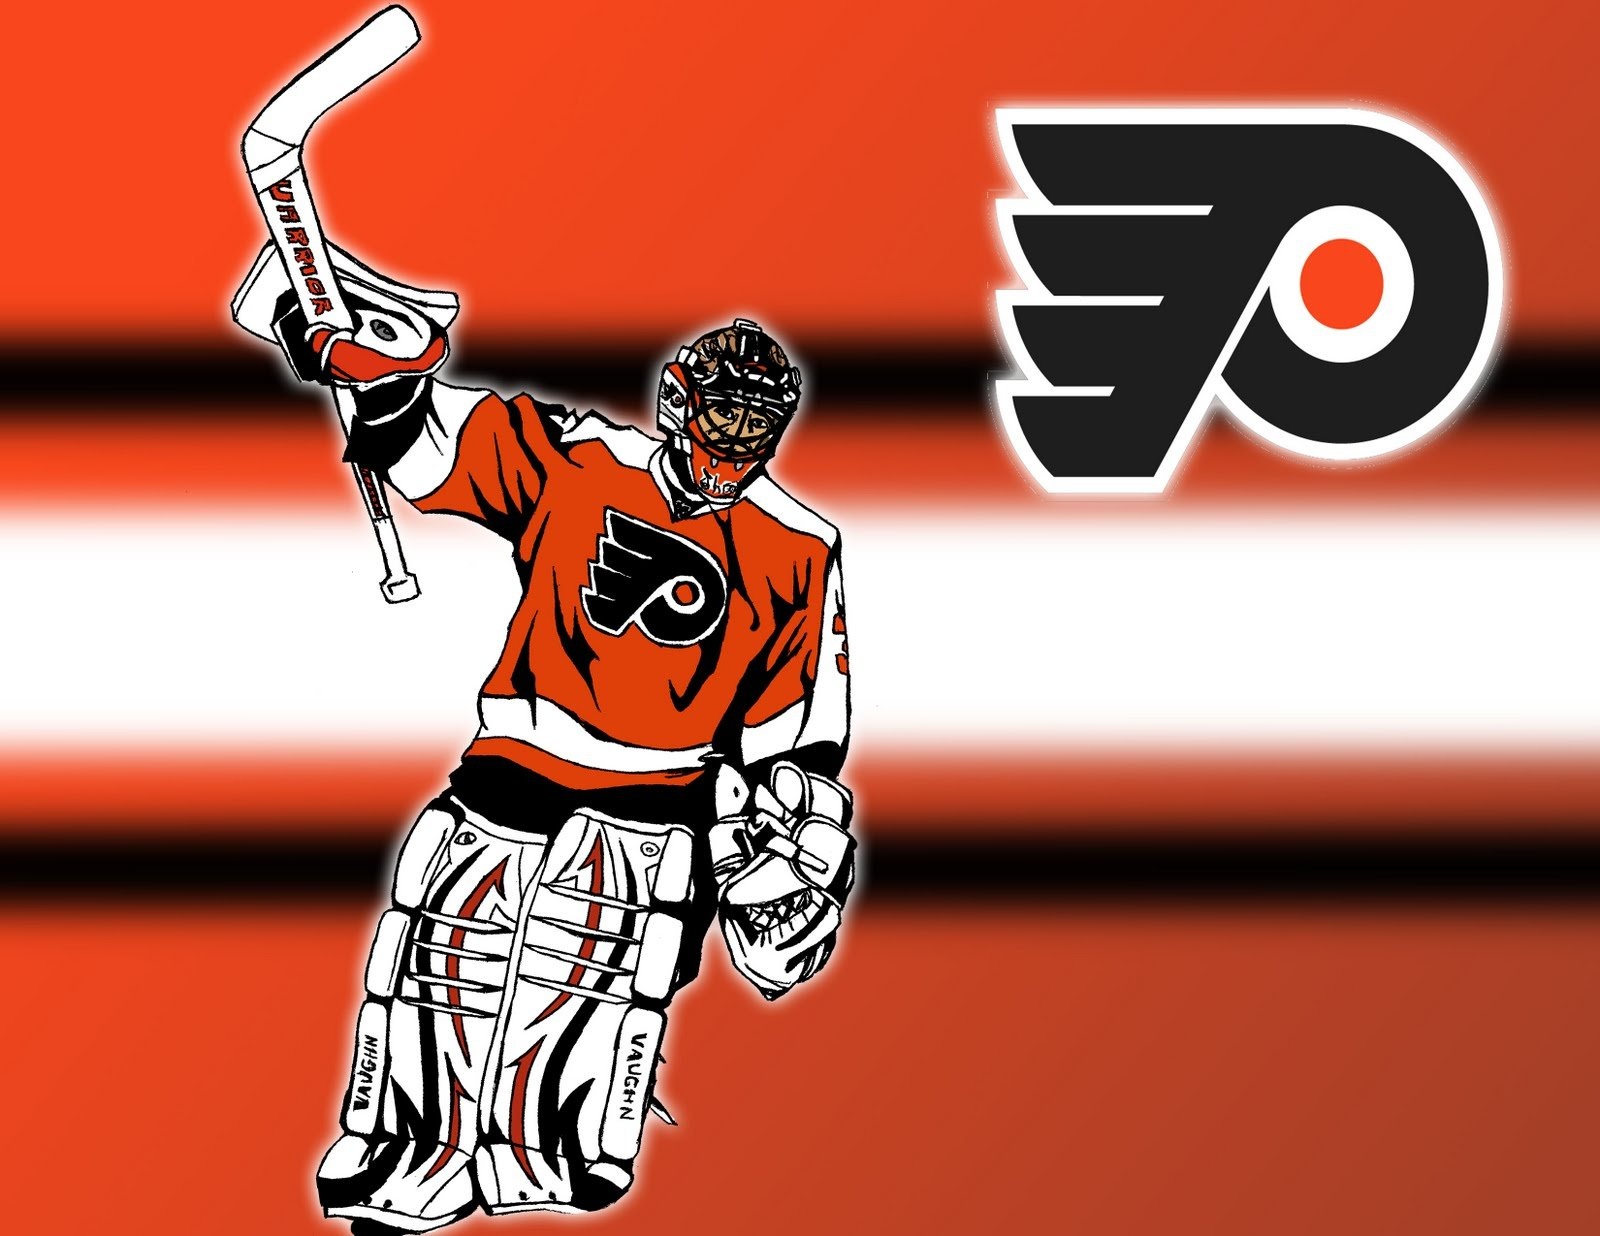 PHILADELPHIA FLYERS nhl hockey 35 wallpaper 1600x1236 344877 1600x1236